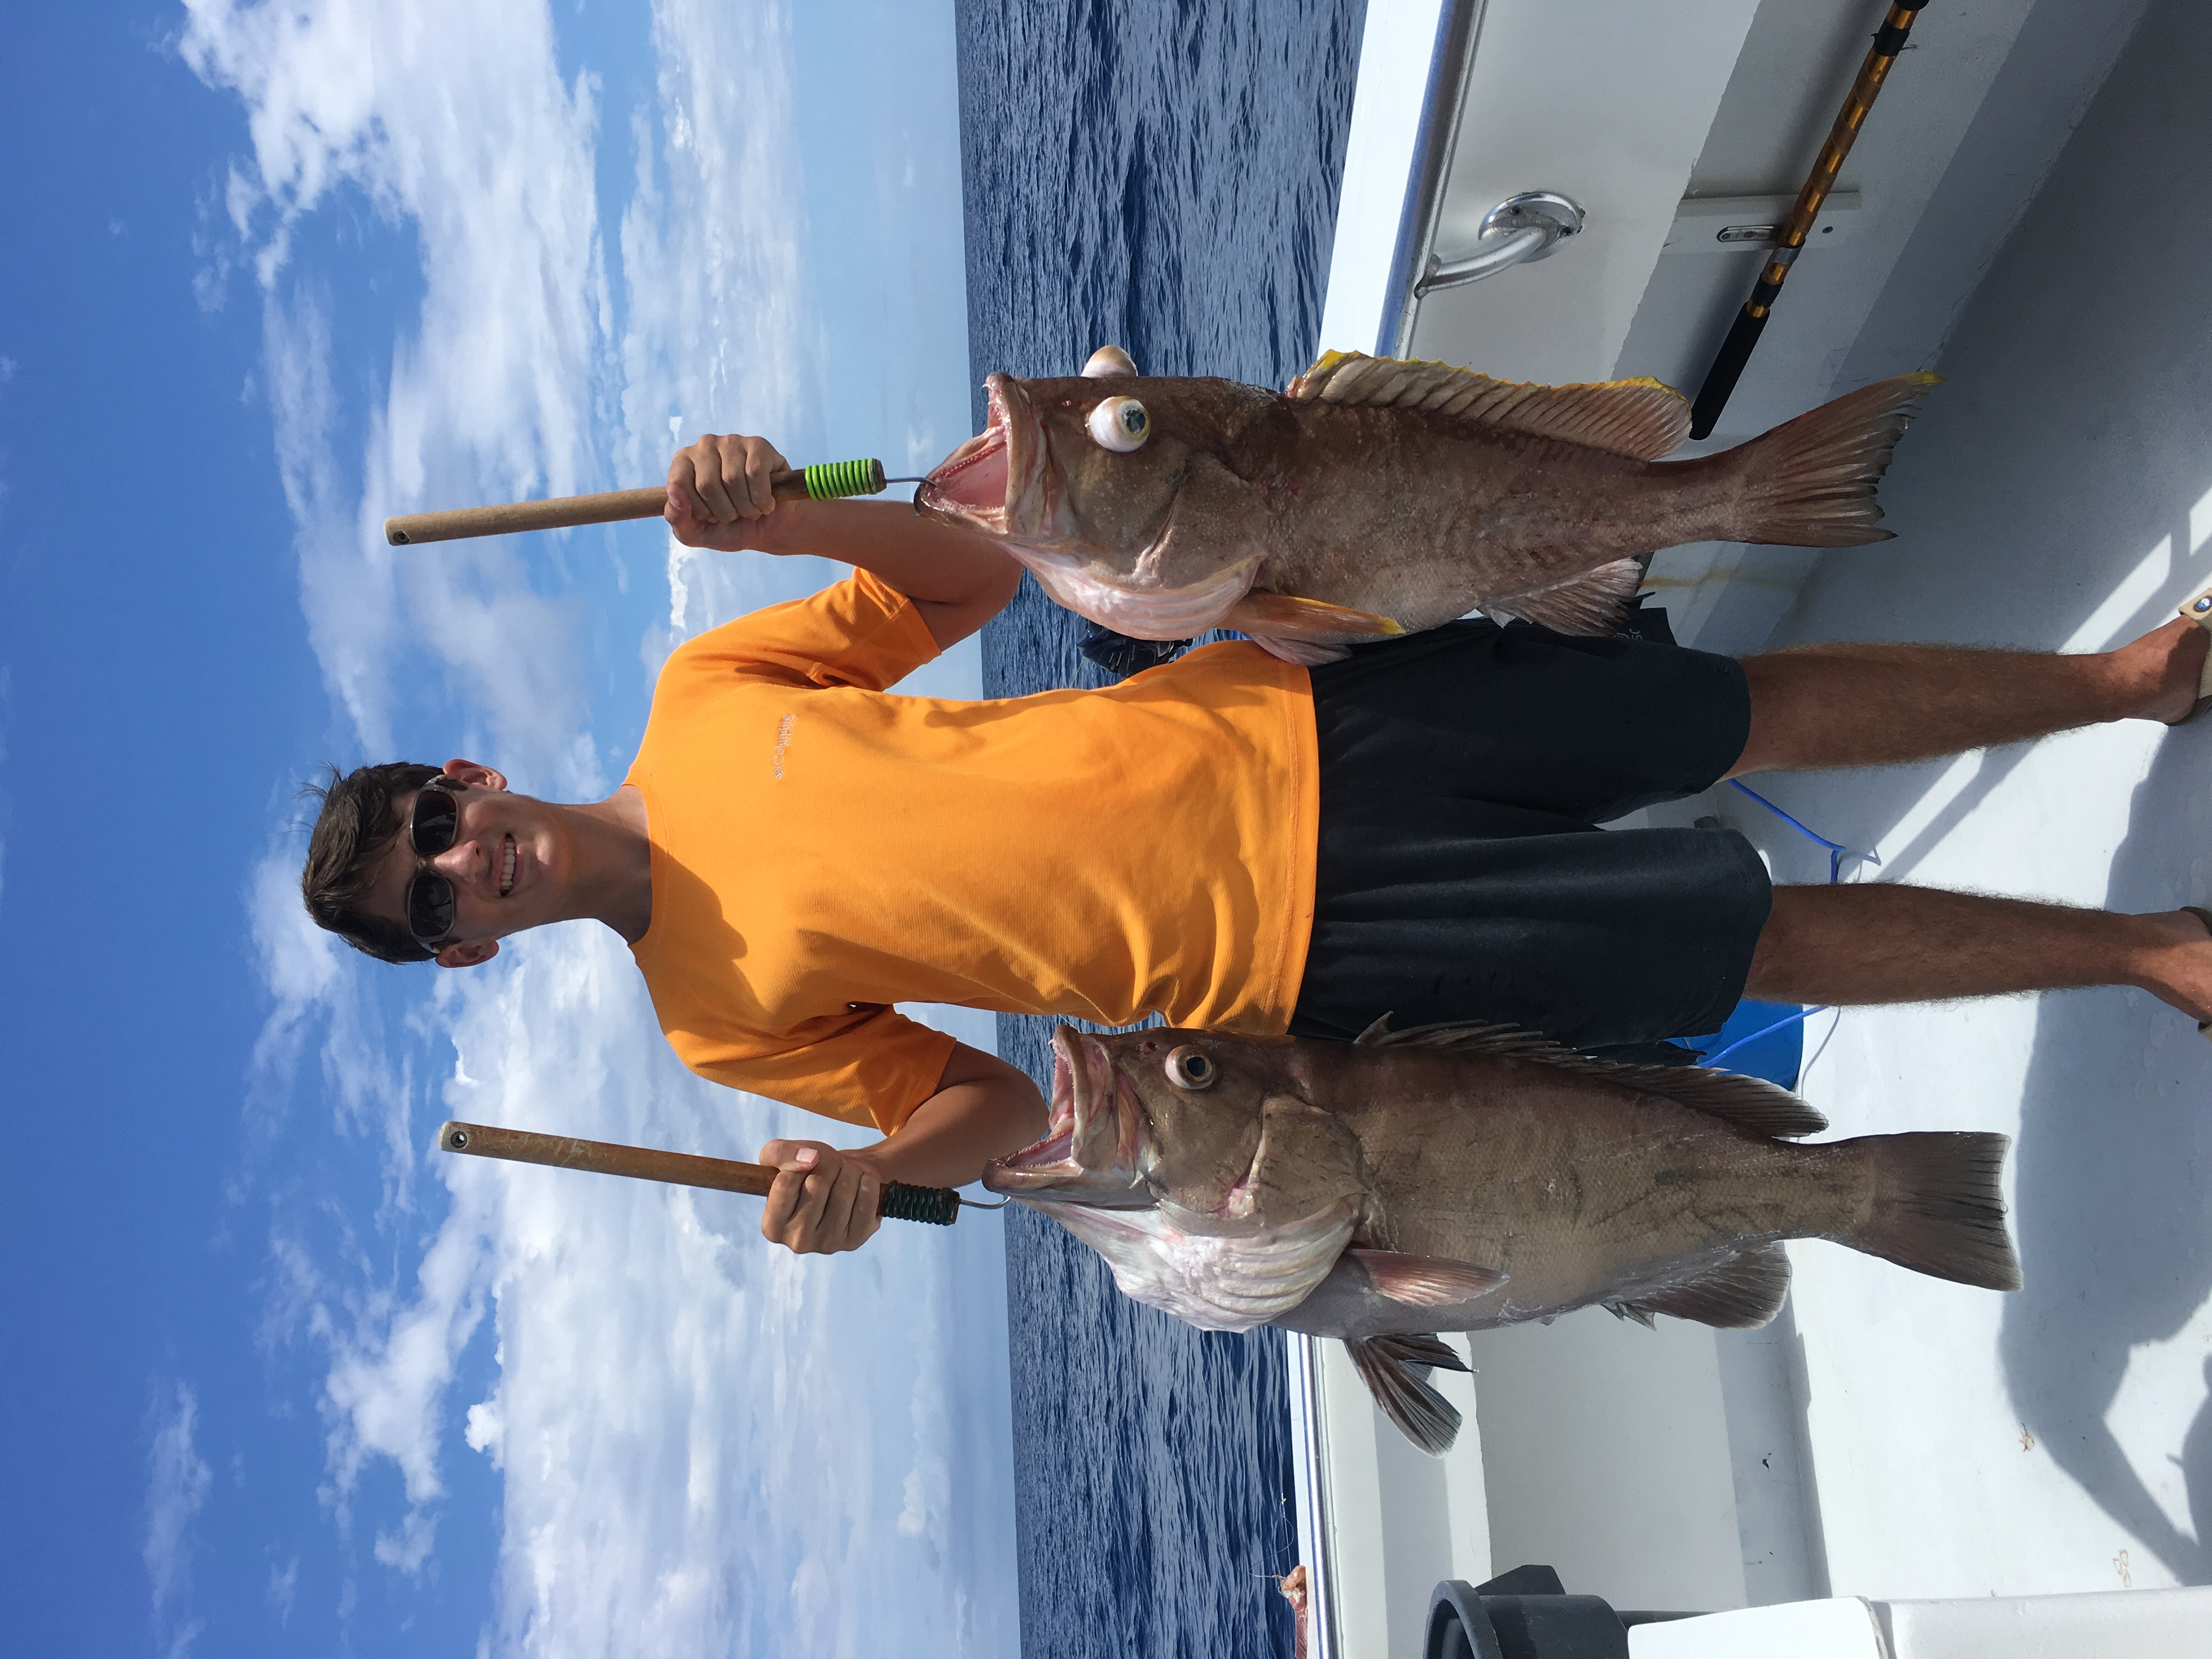 Groupers caught on the 100 Proof